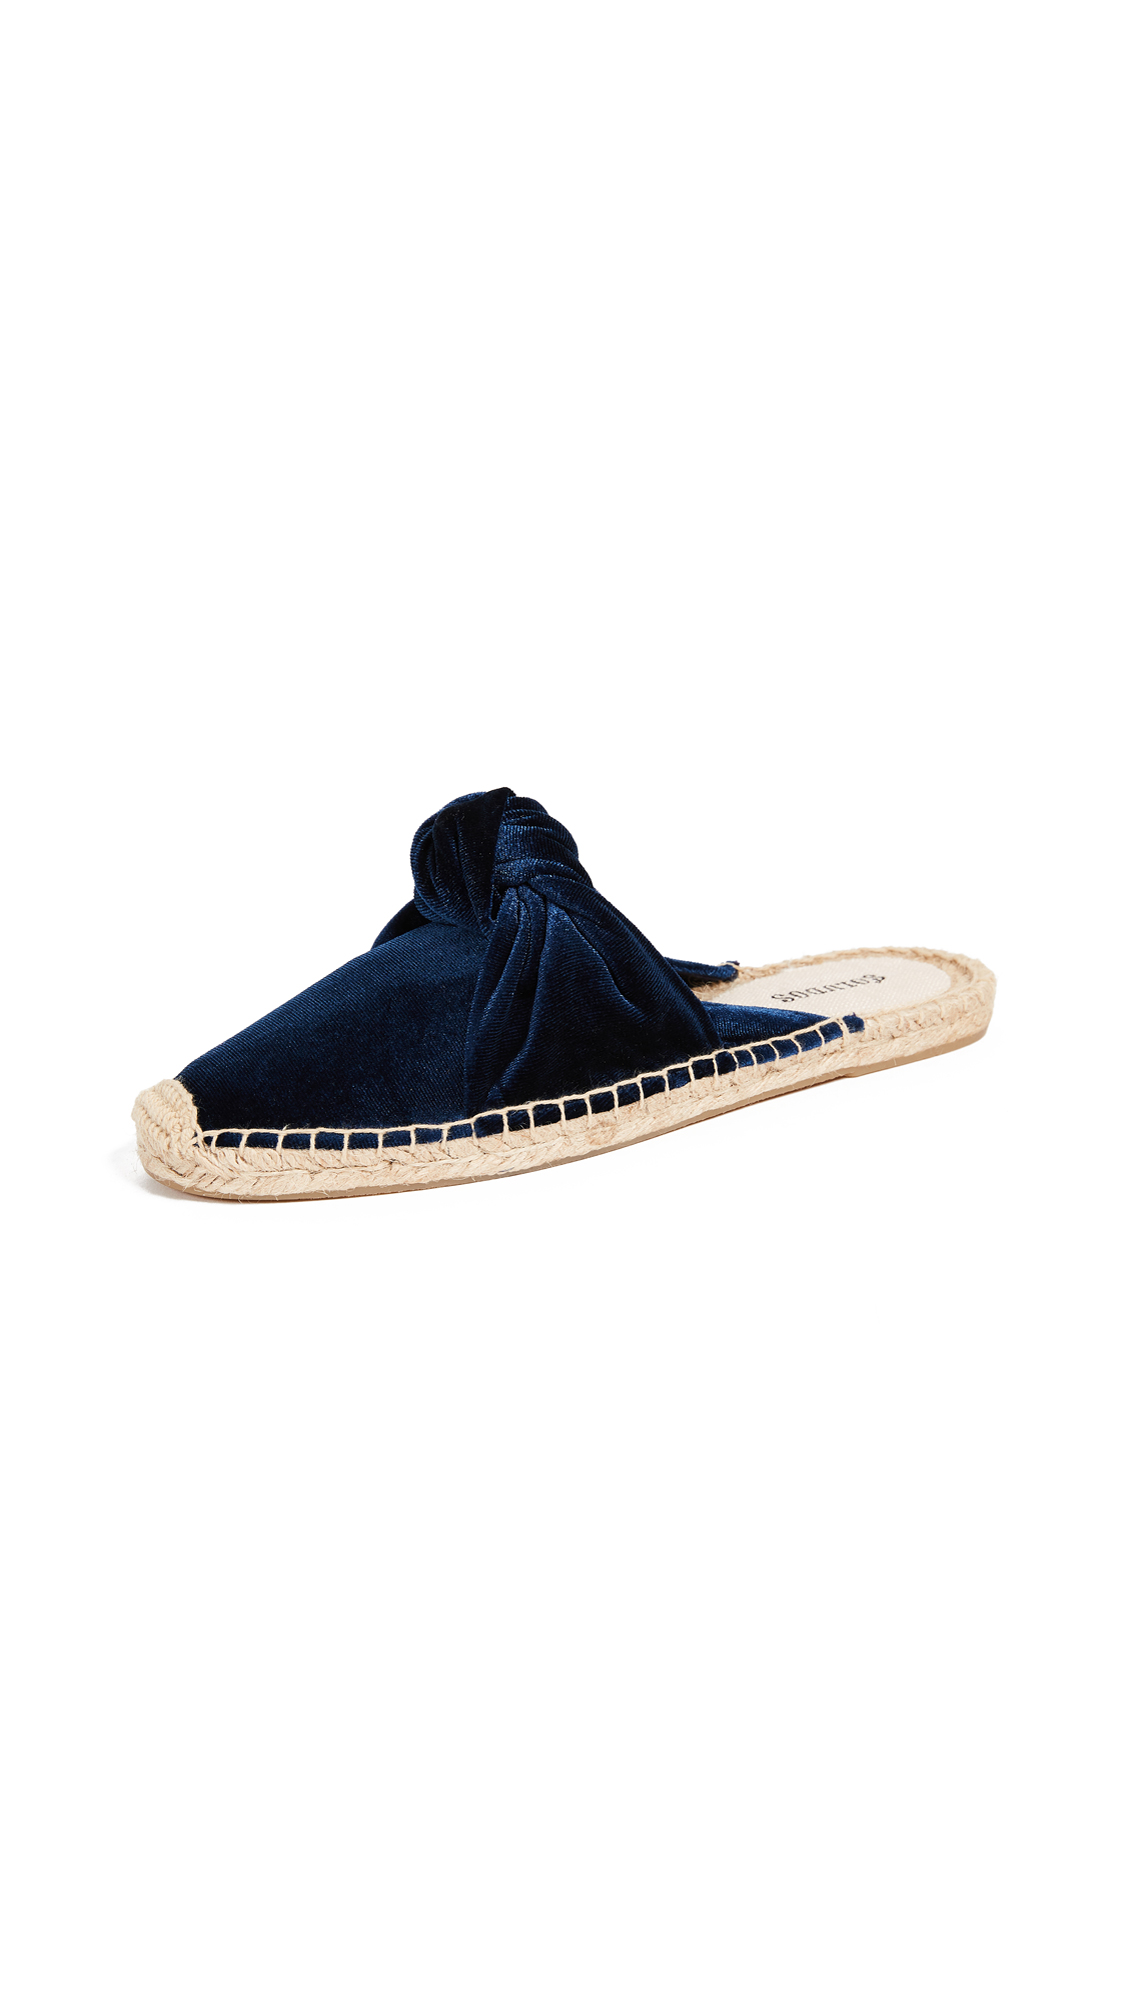 Soludos Knotted Velvet Mules - Blue